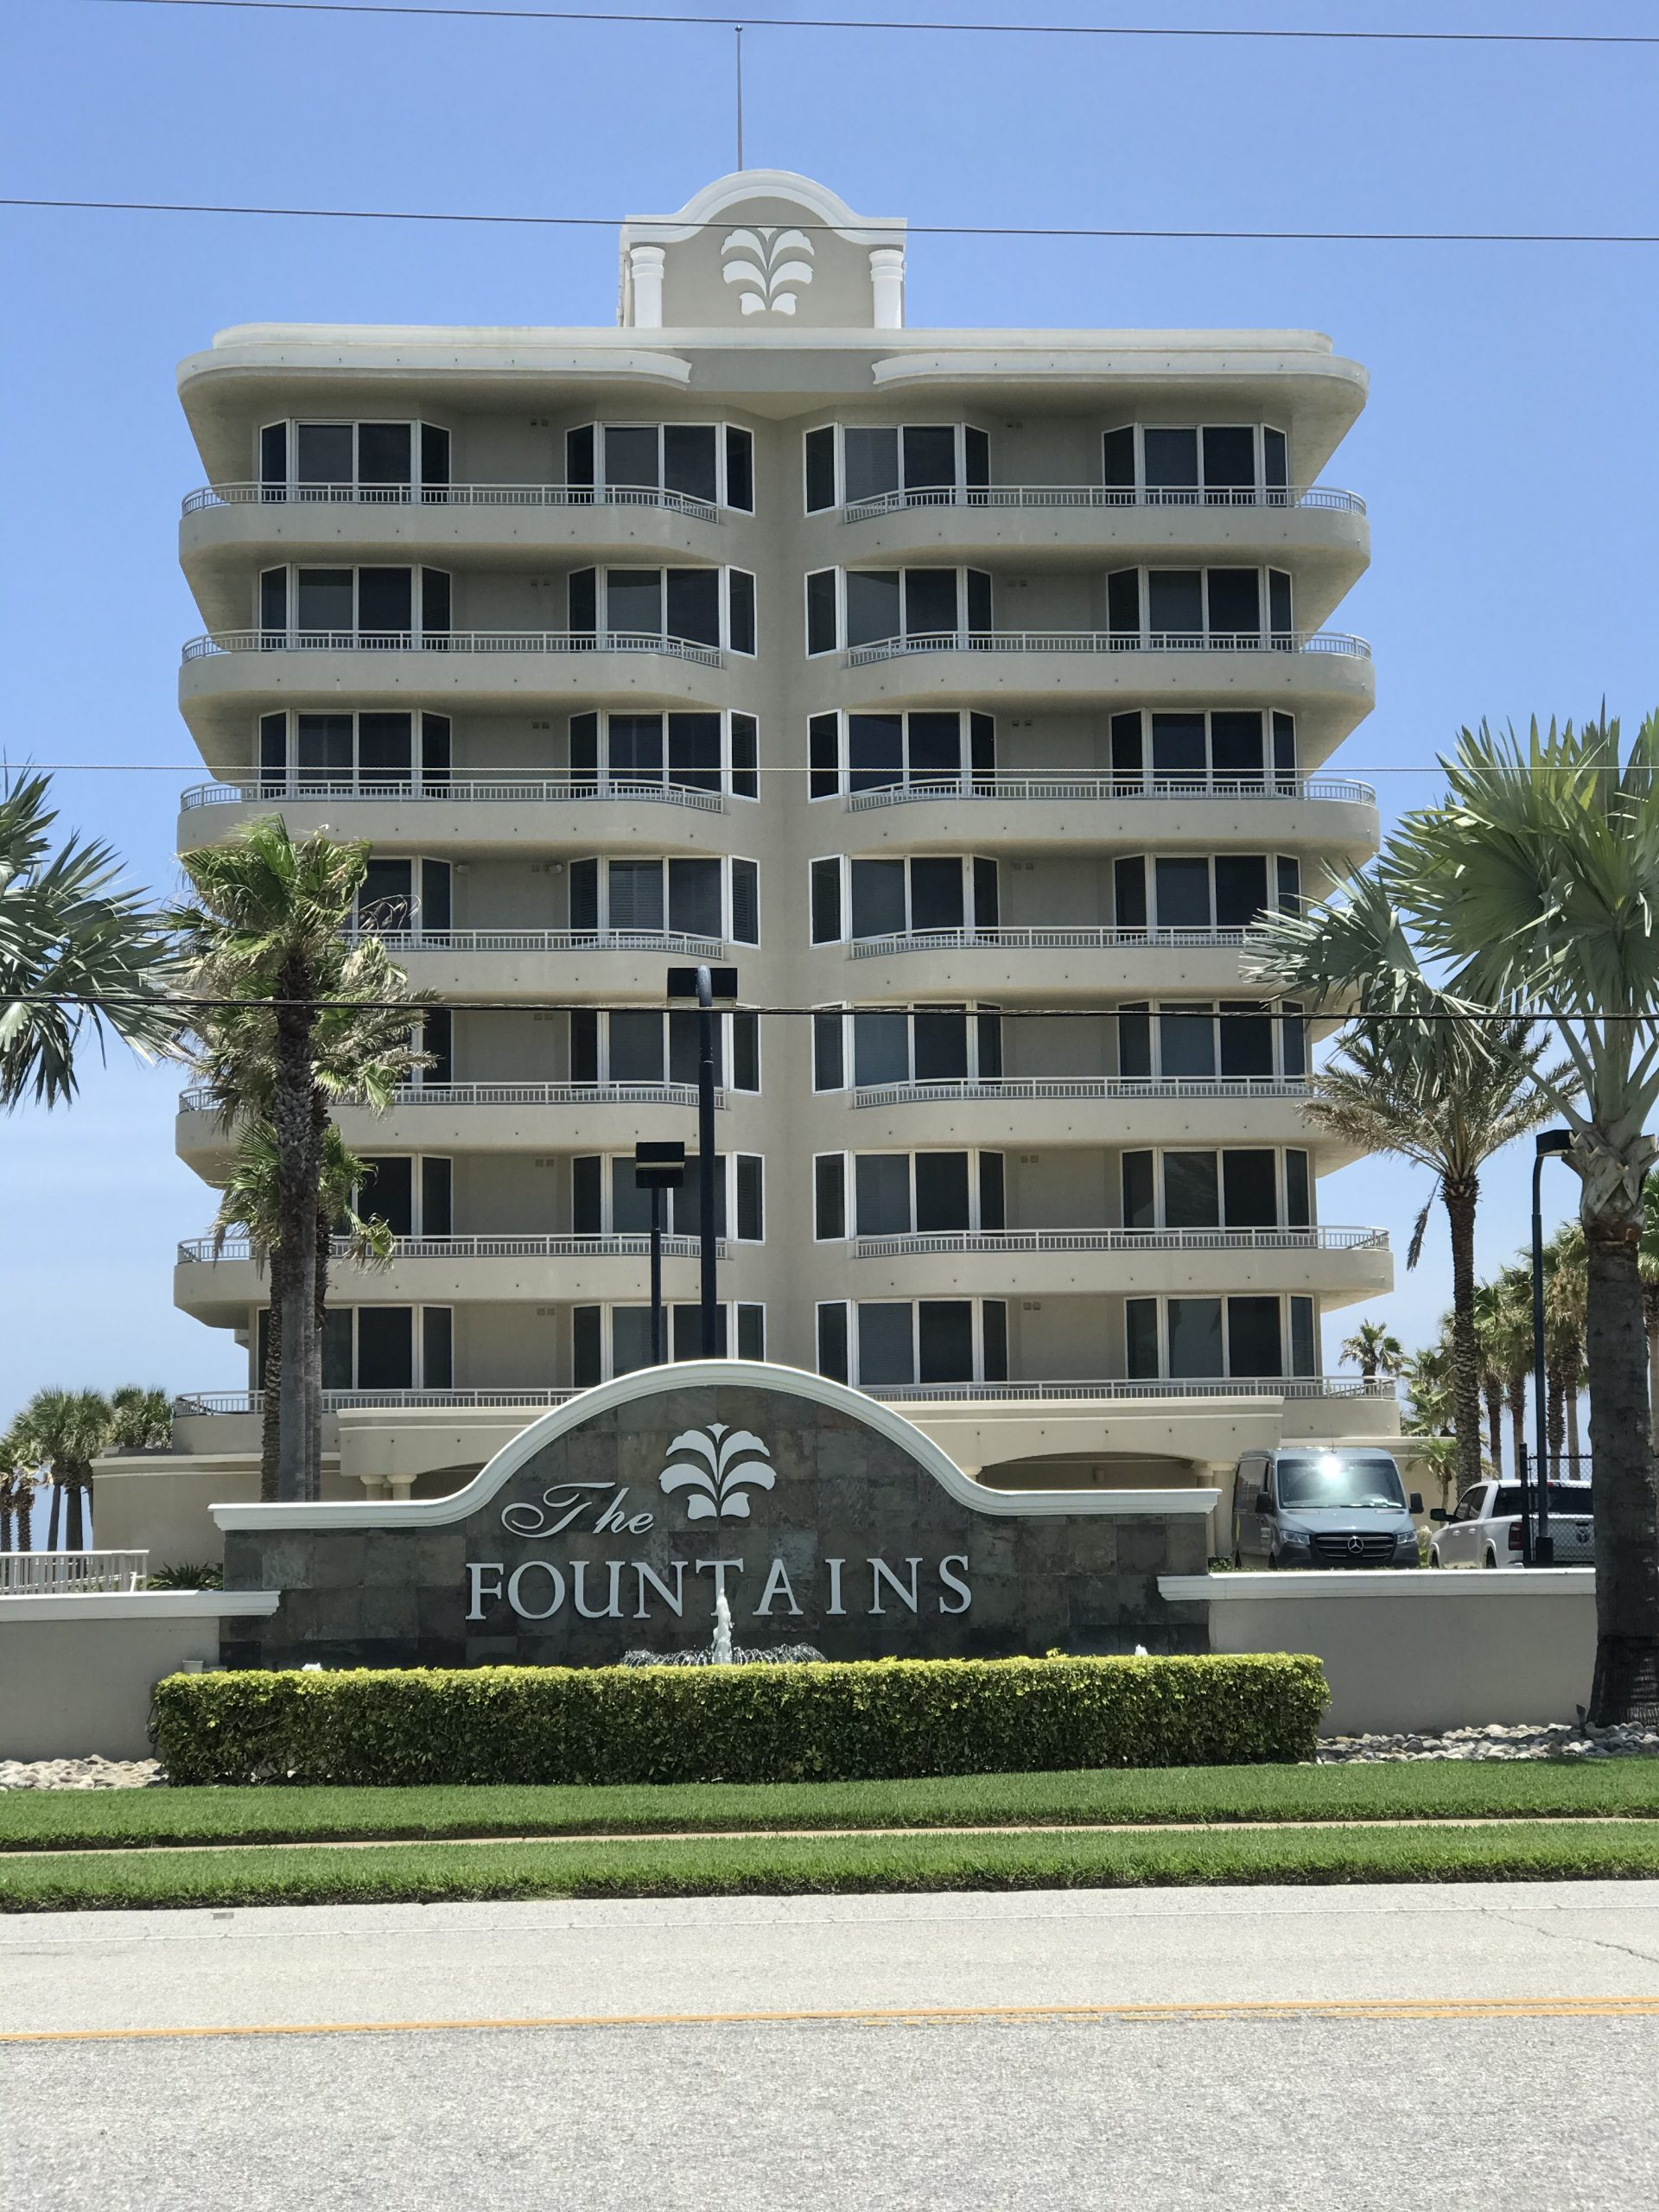 The Fountains, 4207 South Atlantic Ave #501